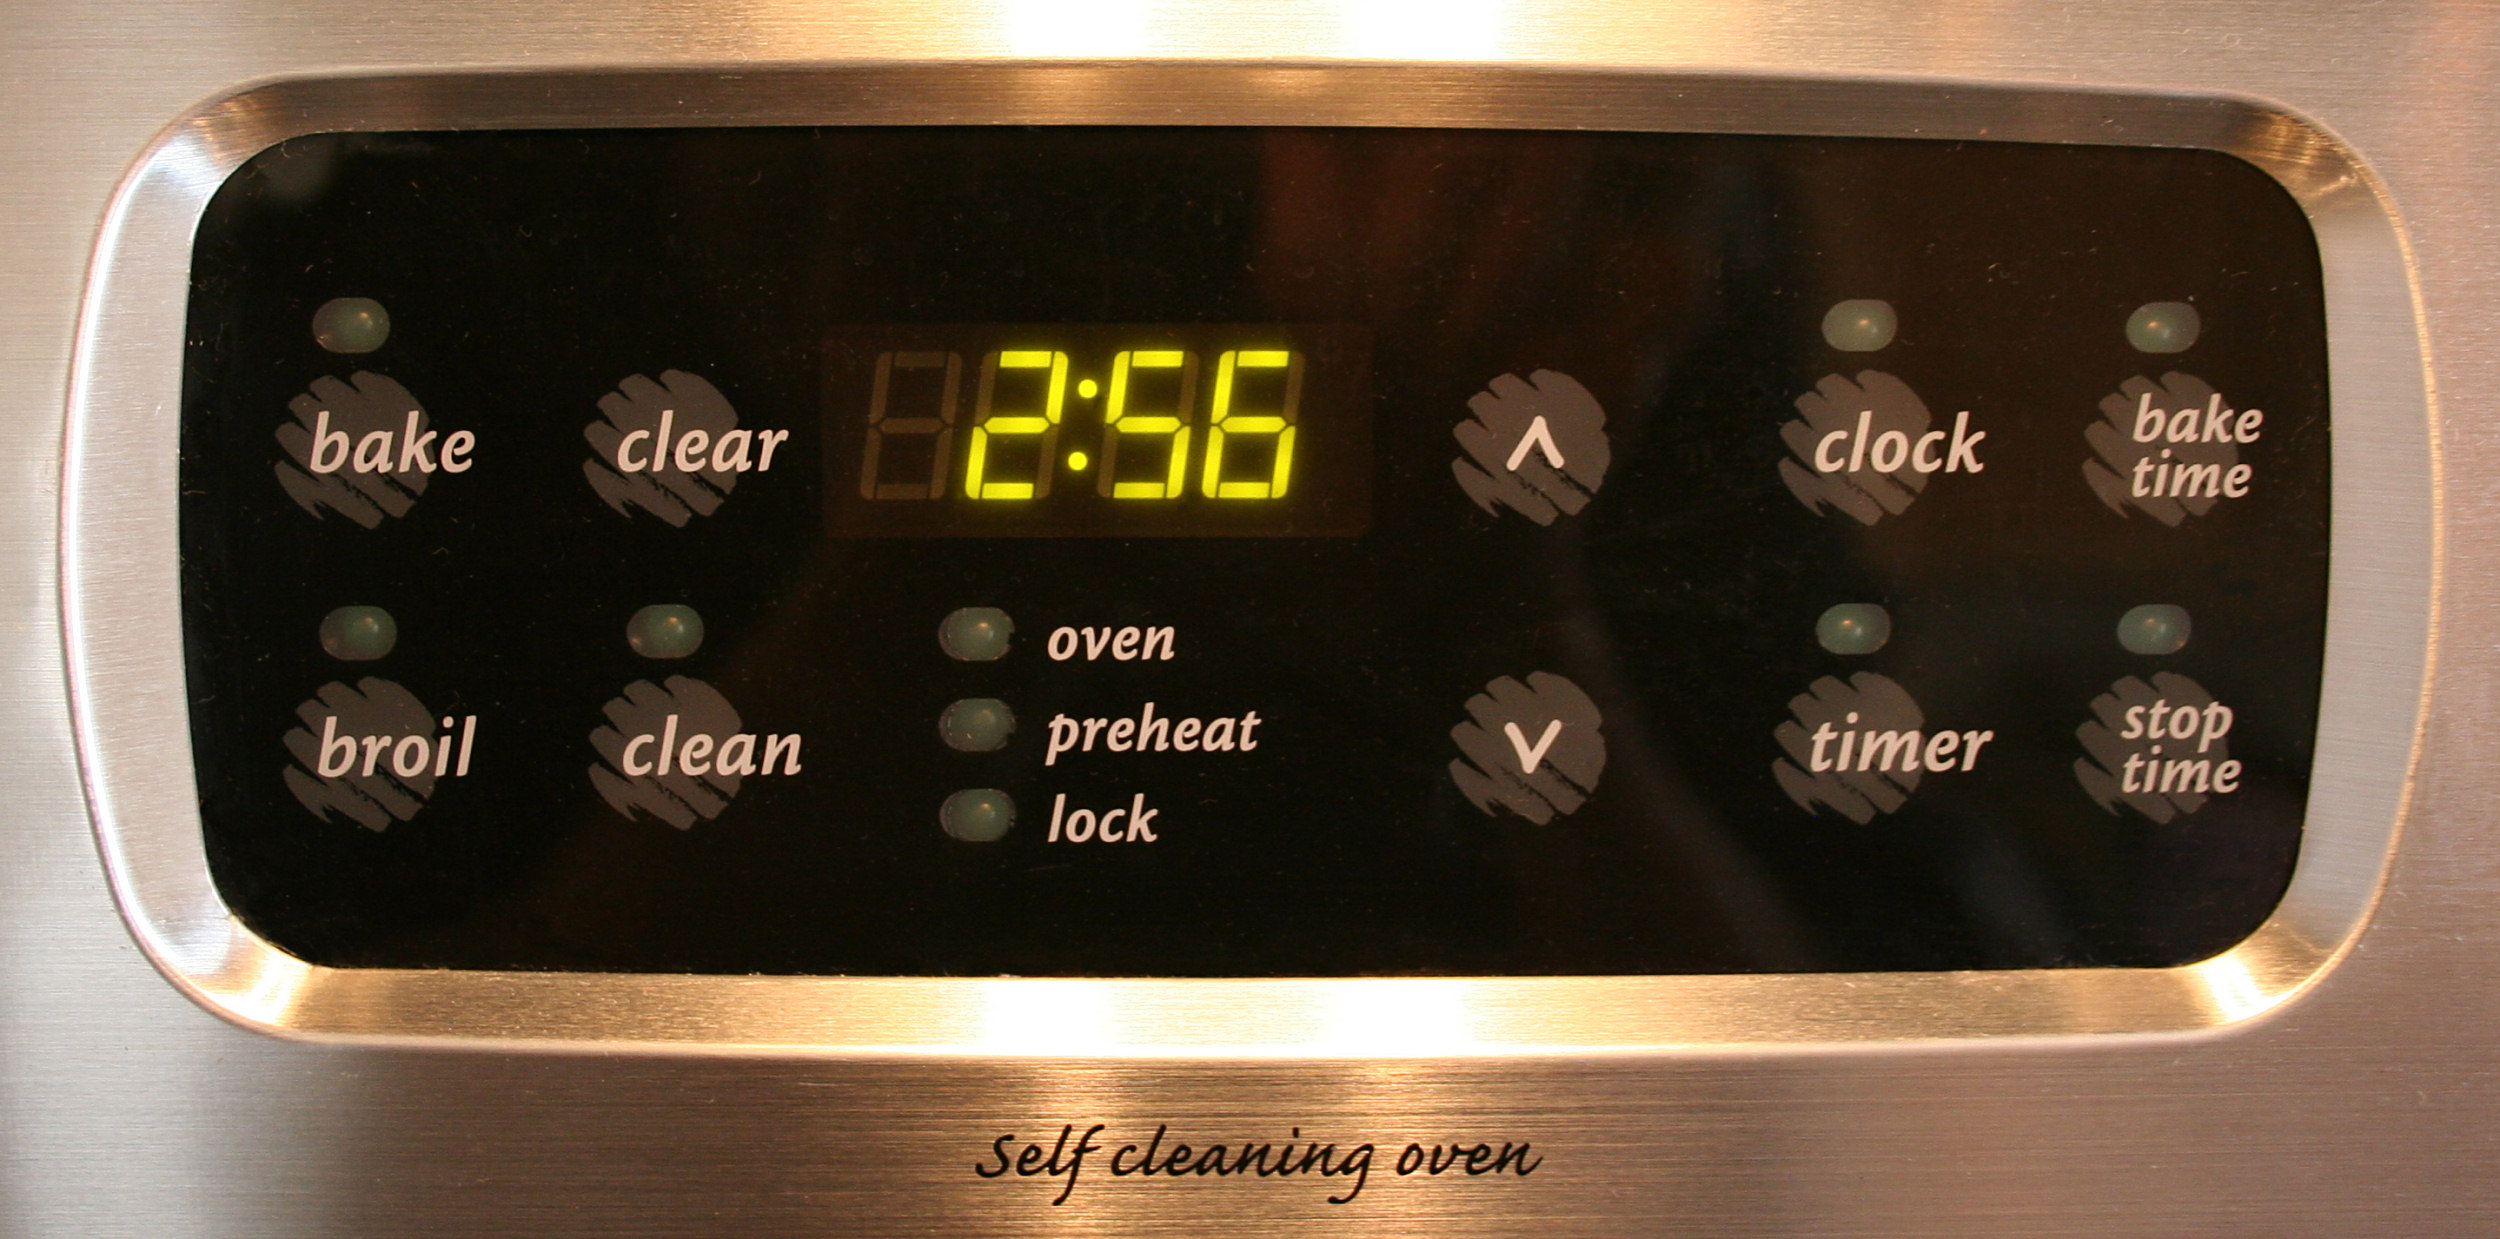 Oven timer not working? Here's what to do - Ideas by Mr Right